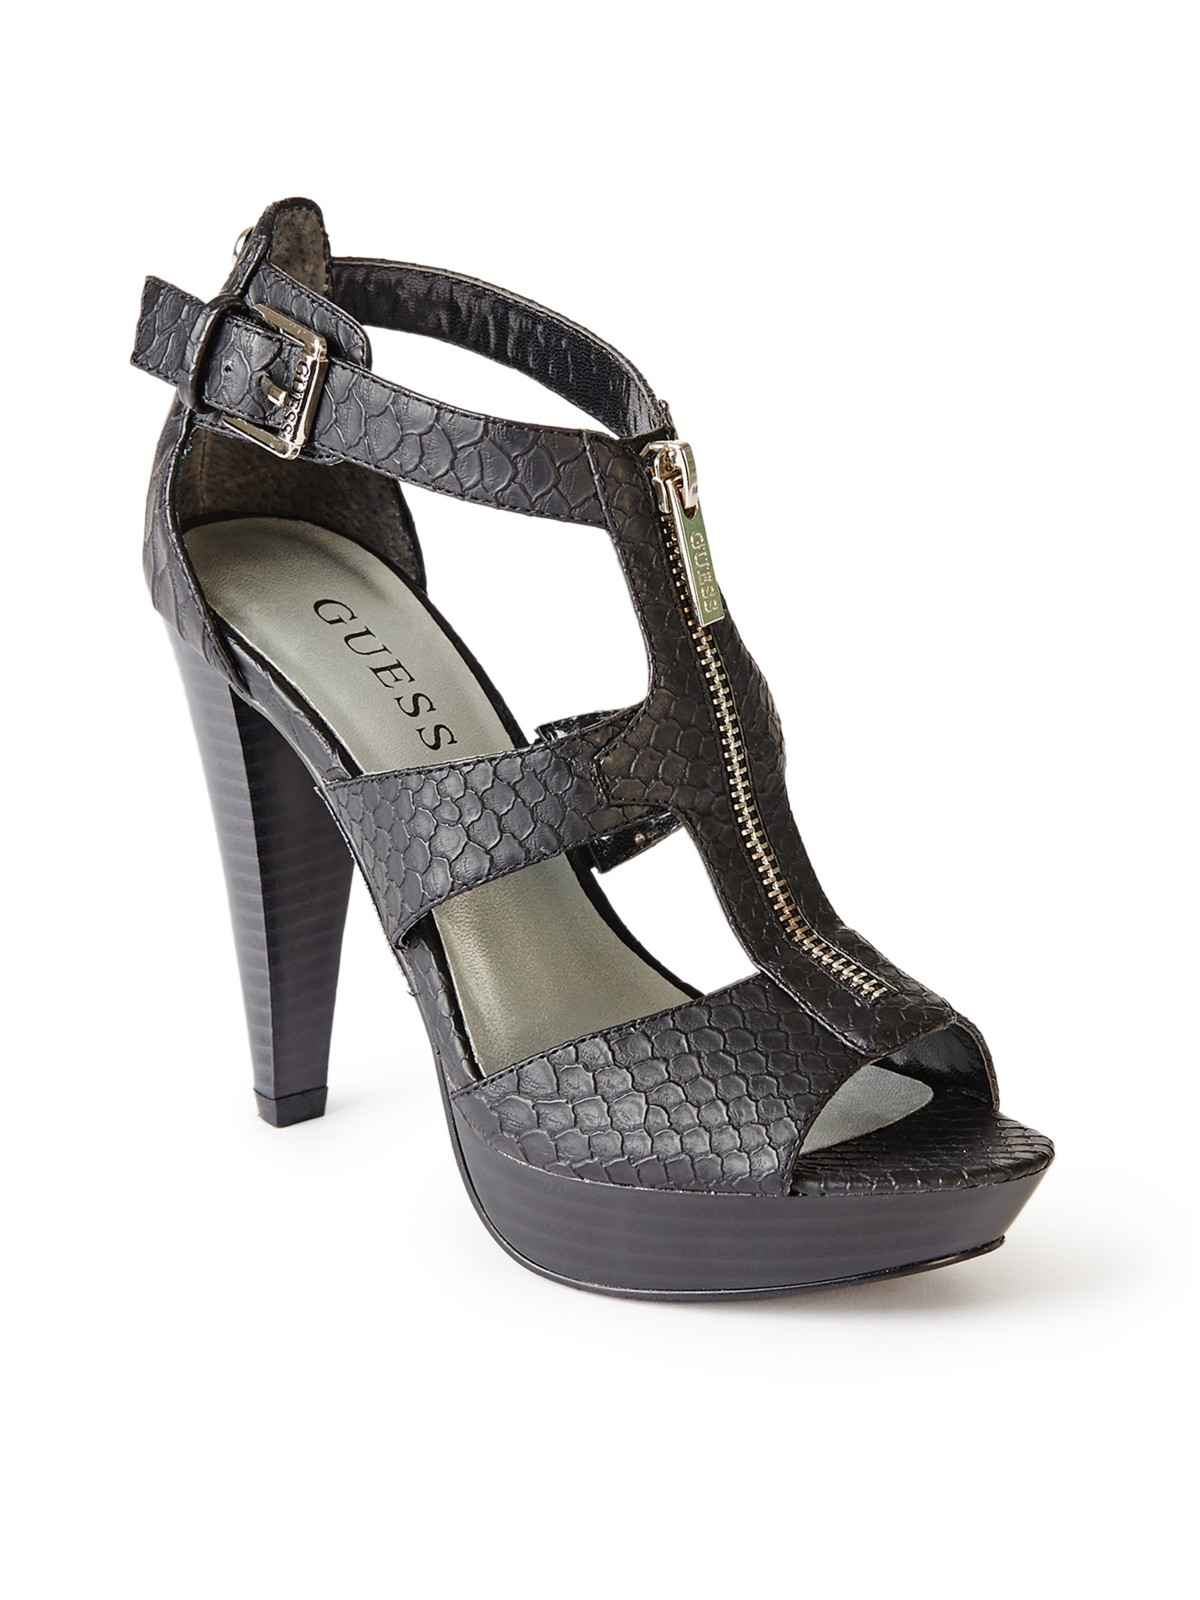 Popular Buy Guess Womens Evalea Wedge Sandal And Other Platforms &amp Wedges At  Our Wide Selection Is Elegible For Free Shipping And Free Returns Cork Slip On Wedge A Classic Summer Slip On Frayed Edges Make It Stick Out From The Crowd